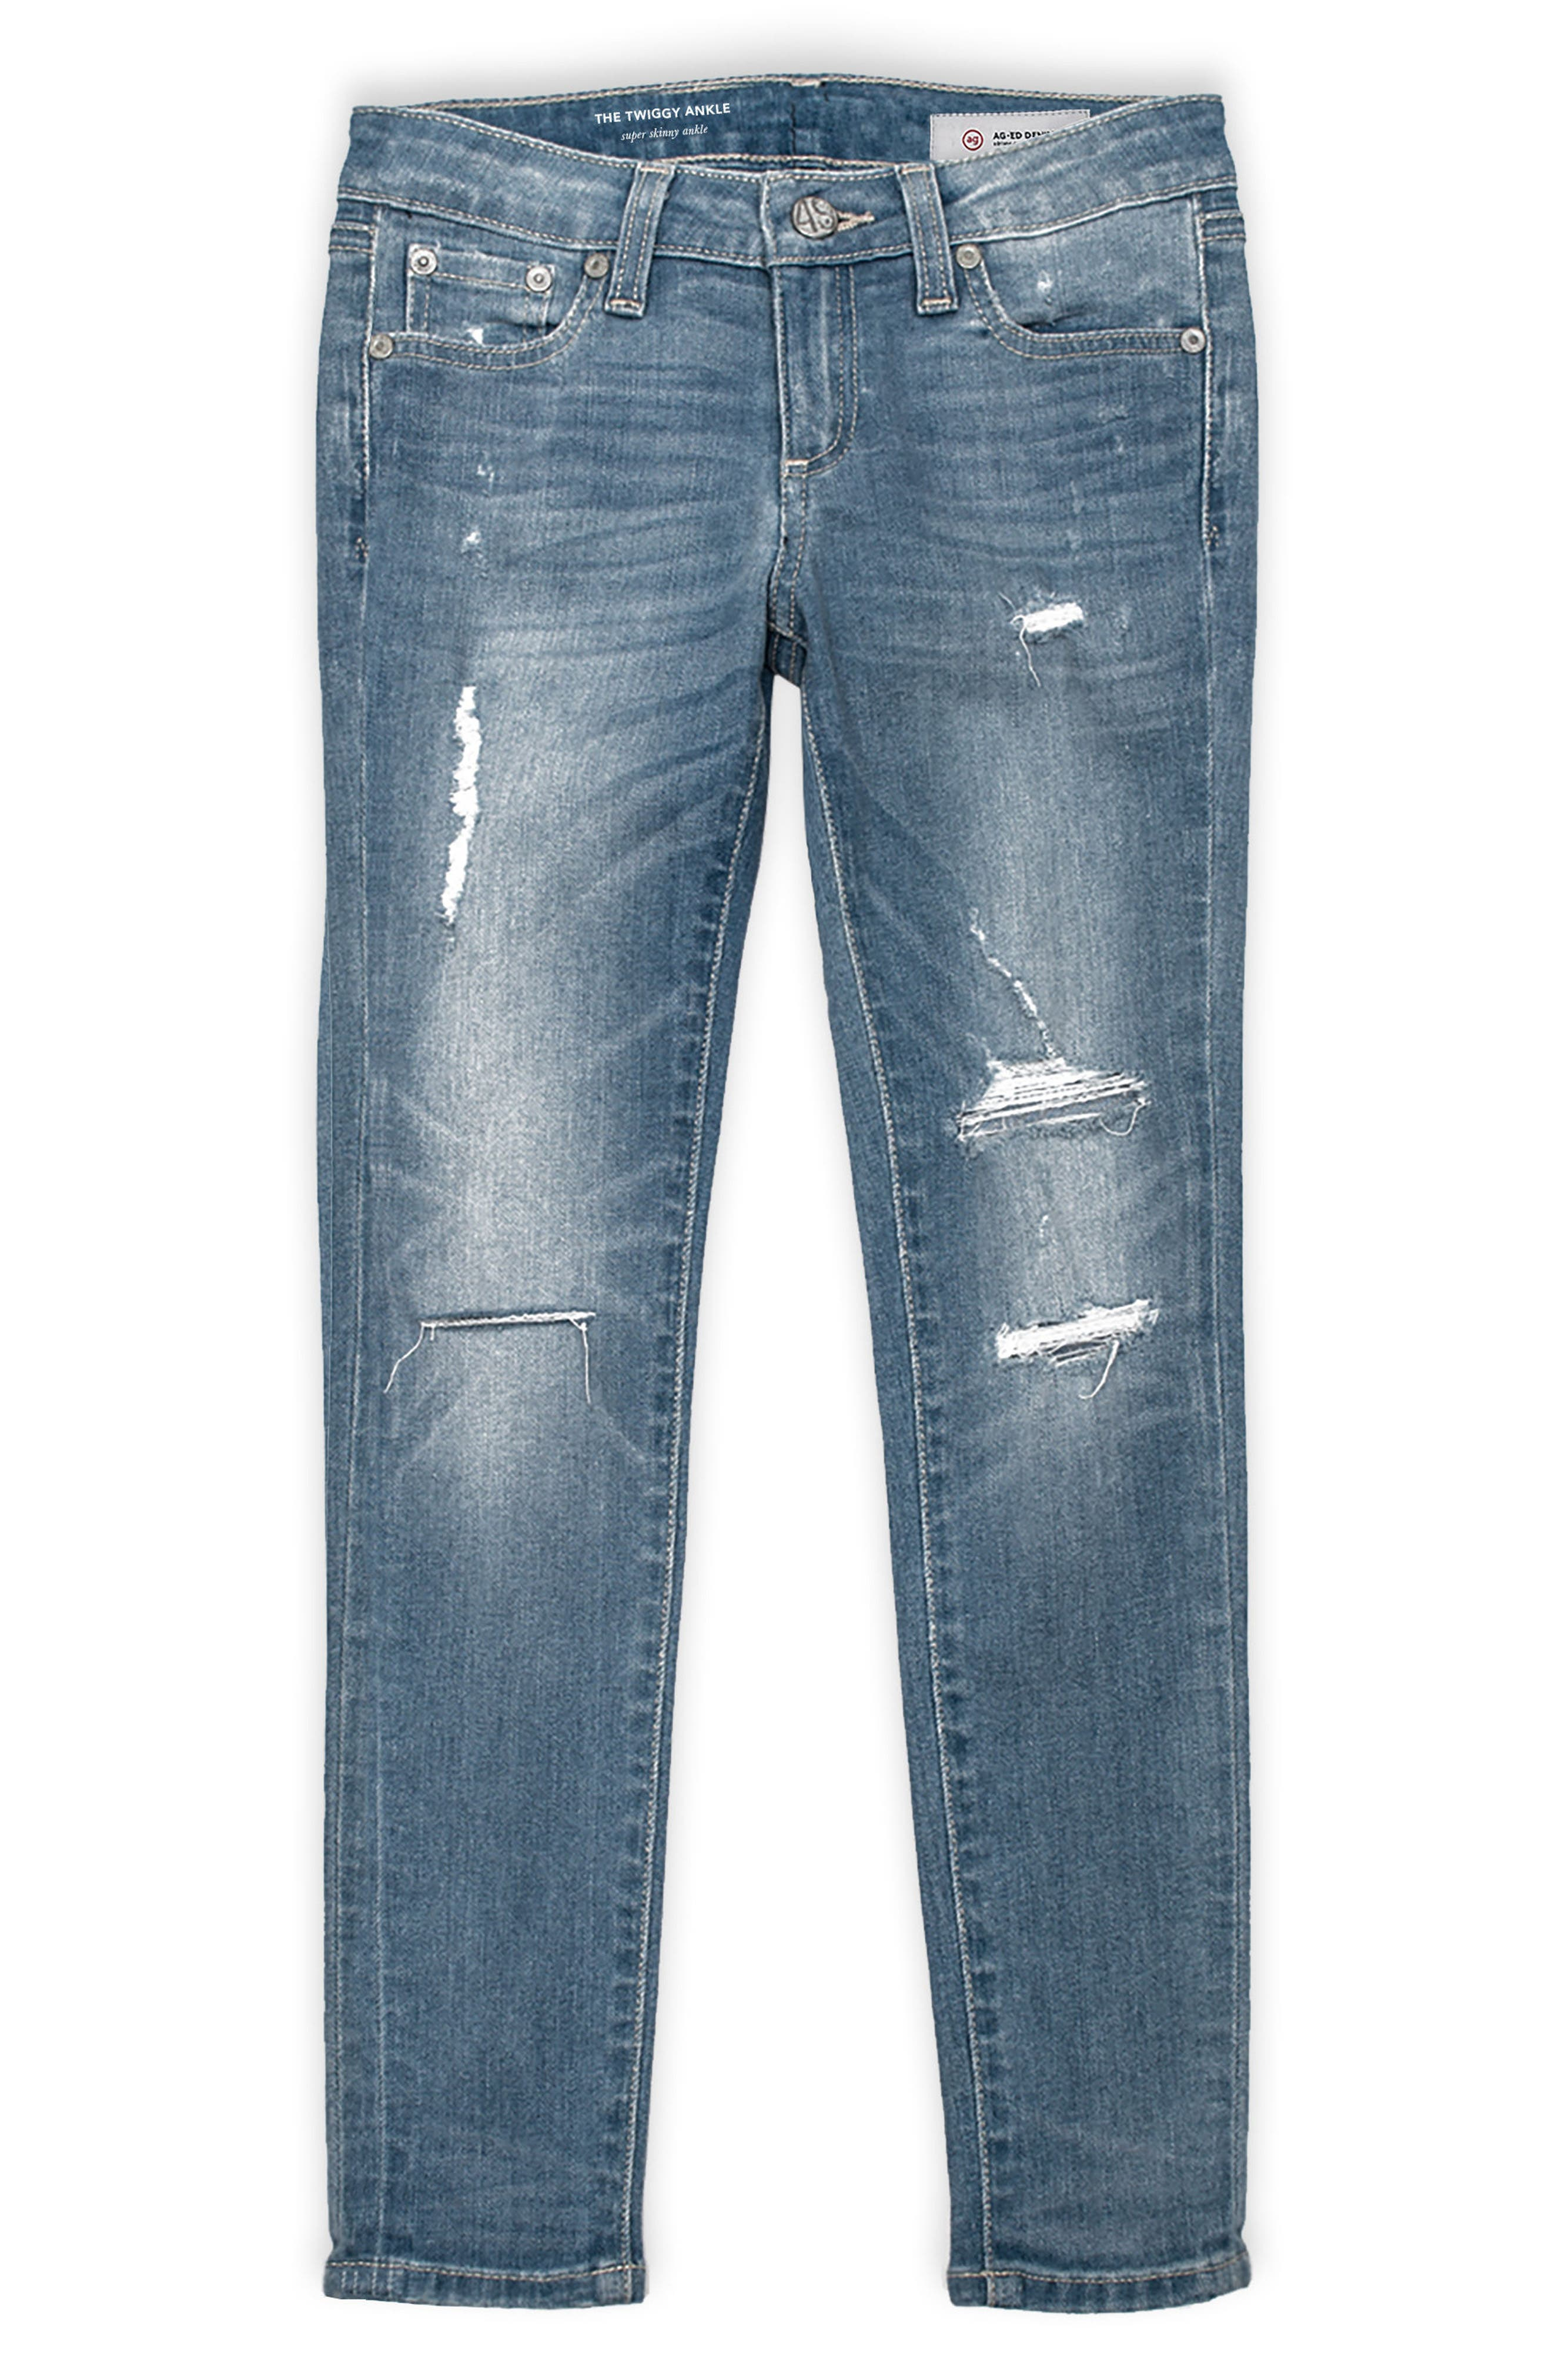 Alternate Image 1 Selected - ag adriano goldschmied kids Twiggy Skinny Ankle Jeans (Big Girls)